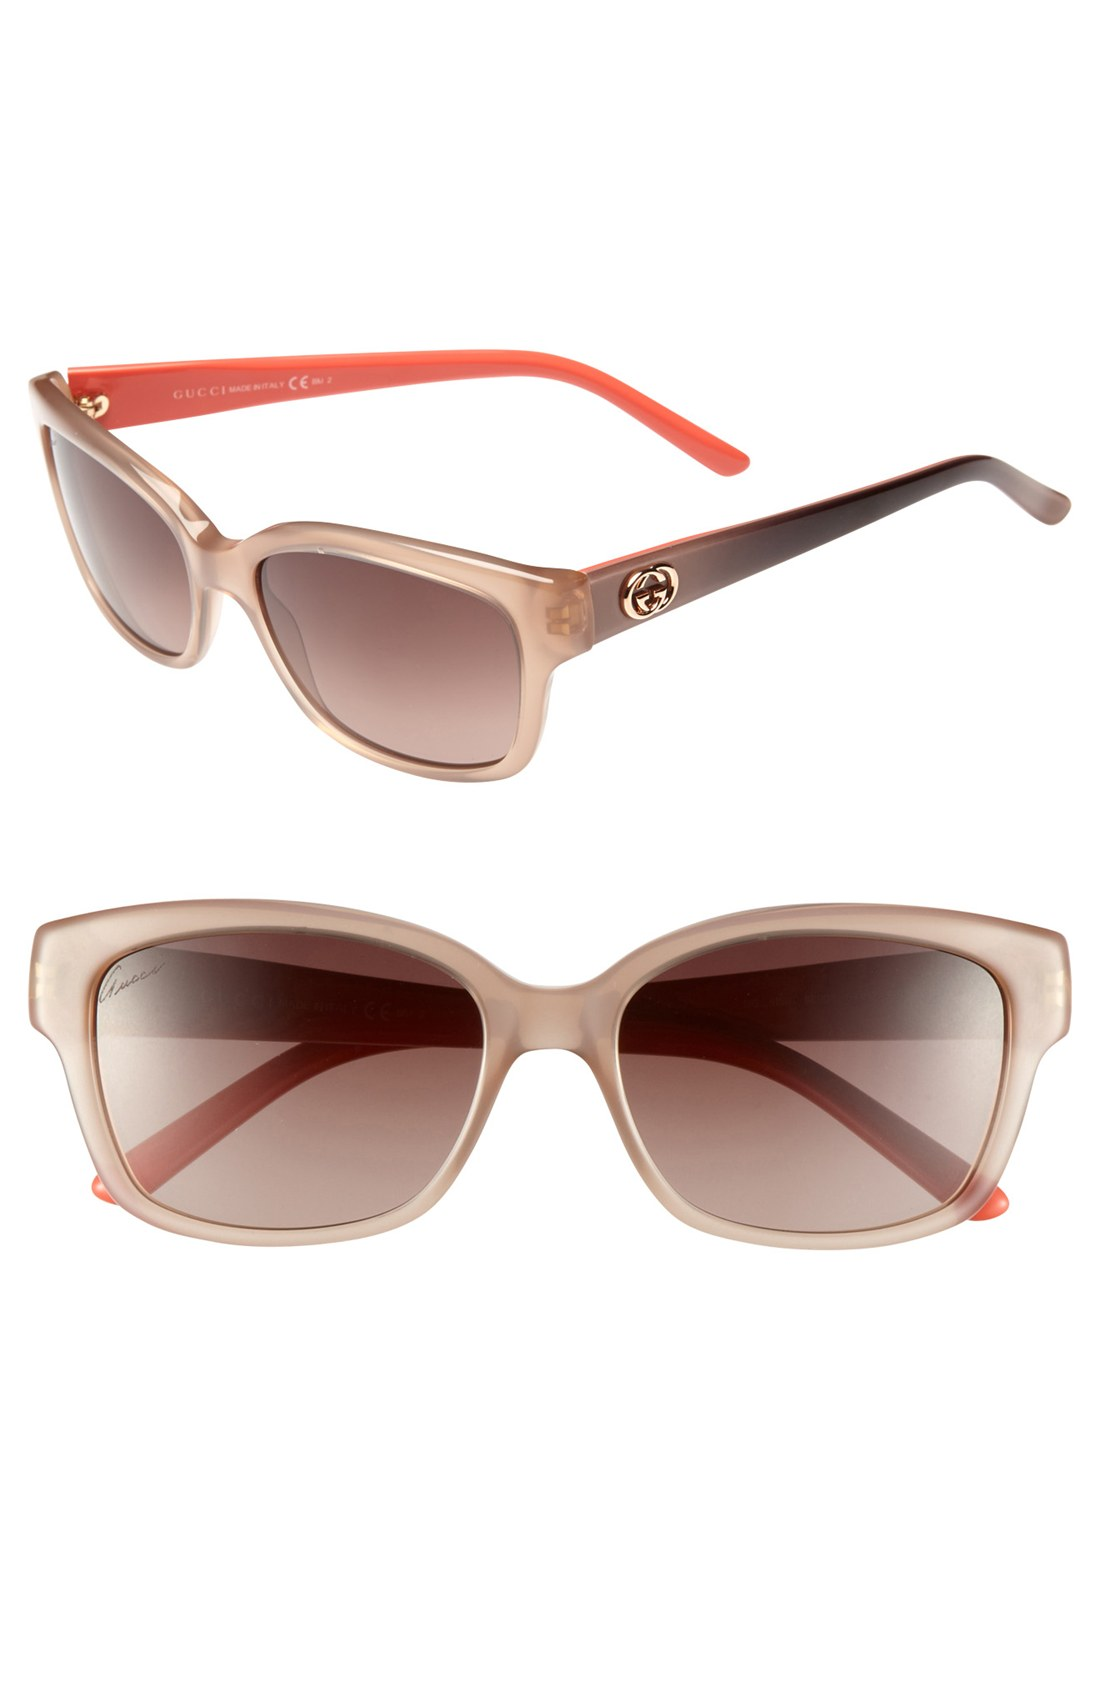 Gucci 54mm Sunglasses in Brown (brown/ pink) | Lyst